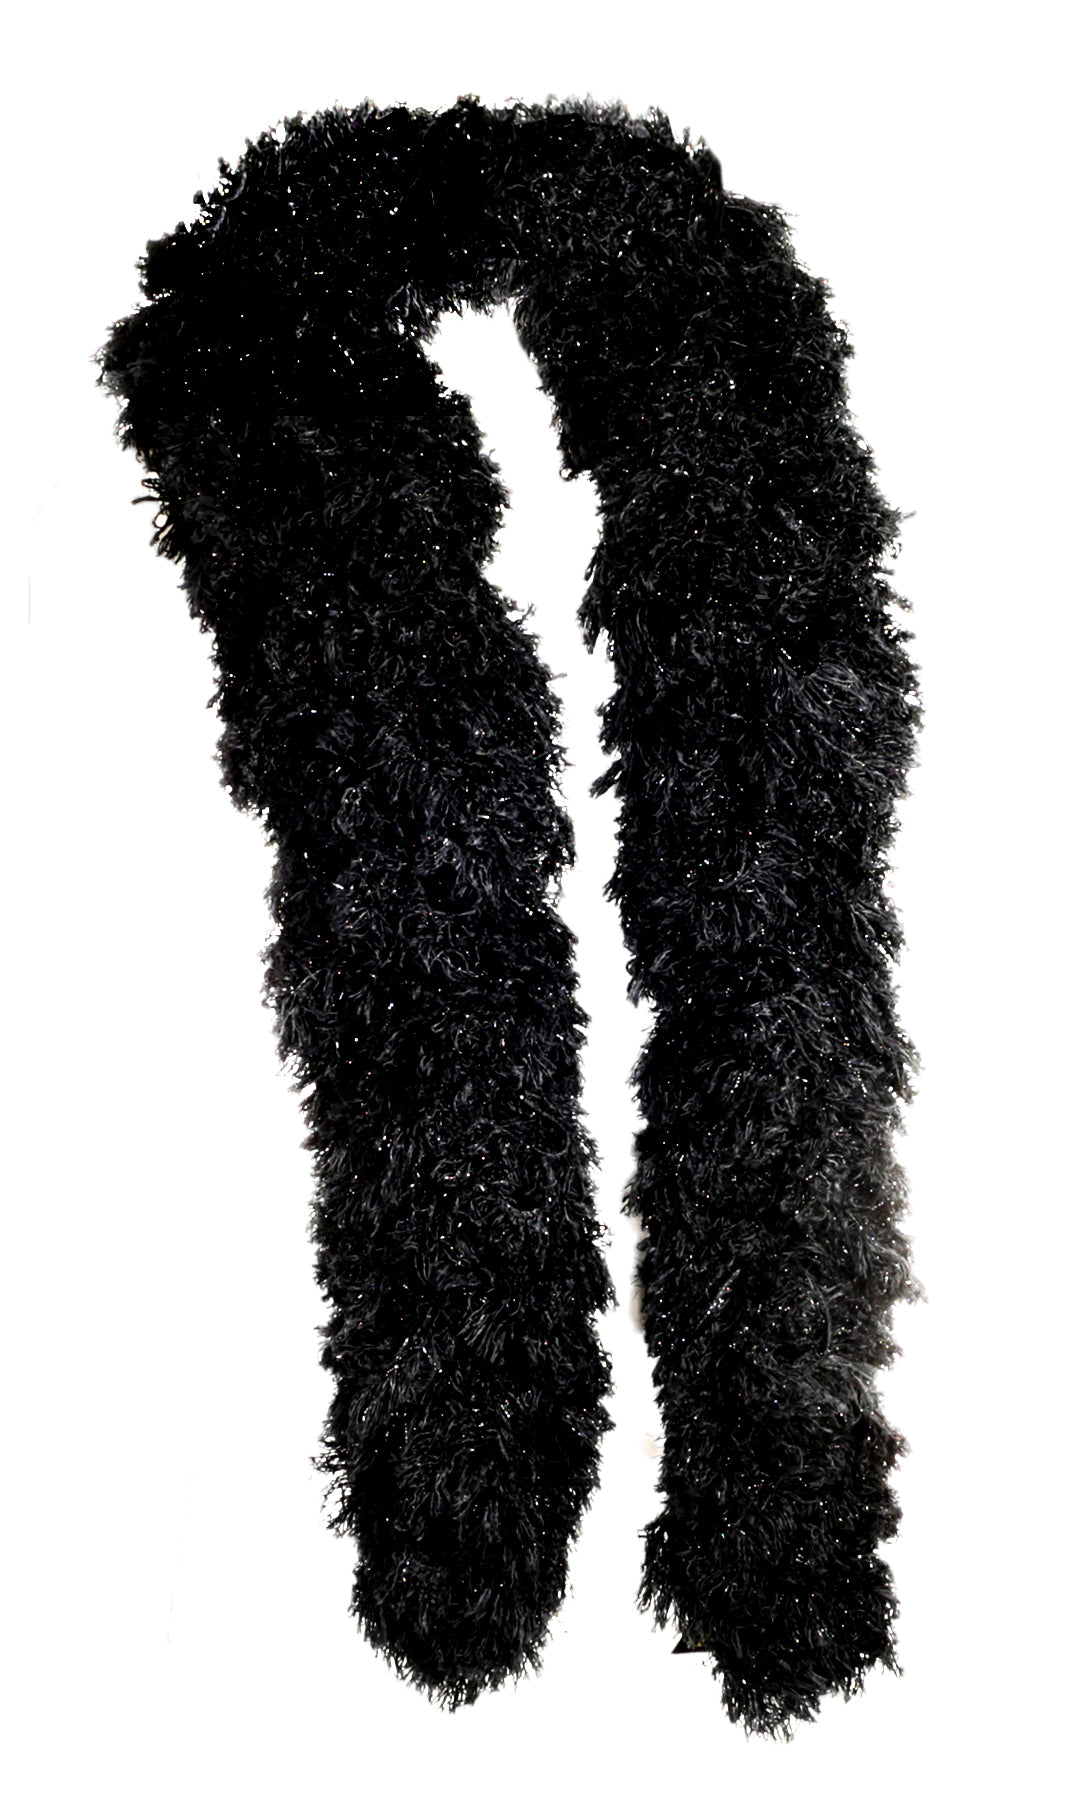 SUPER Sized Featherless Boa - Black - Happy Boa: Faux Feather Boa